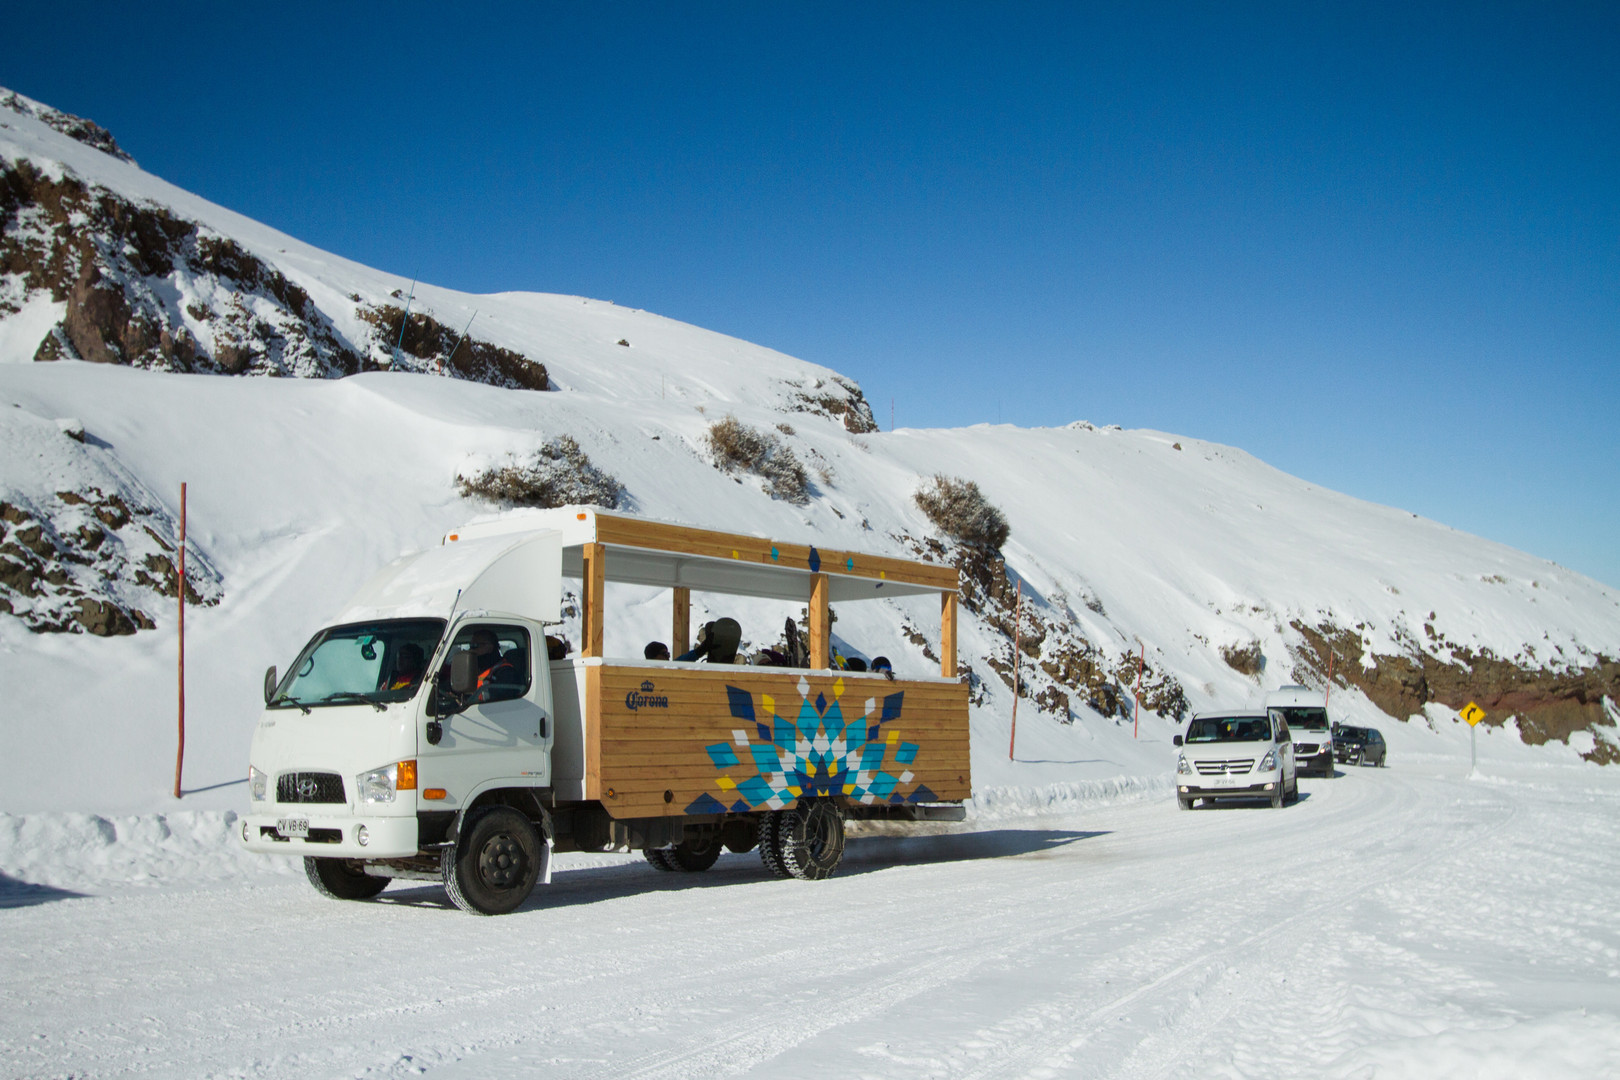 BUSES VALLE NEVADO